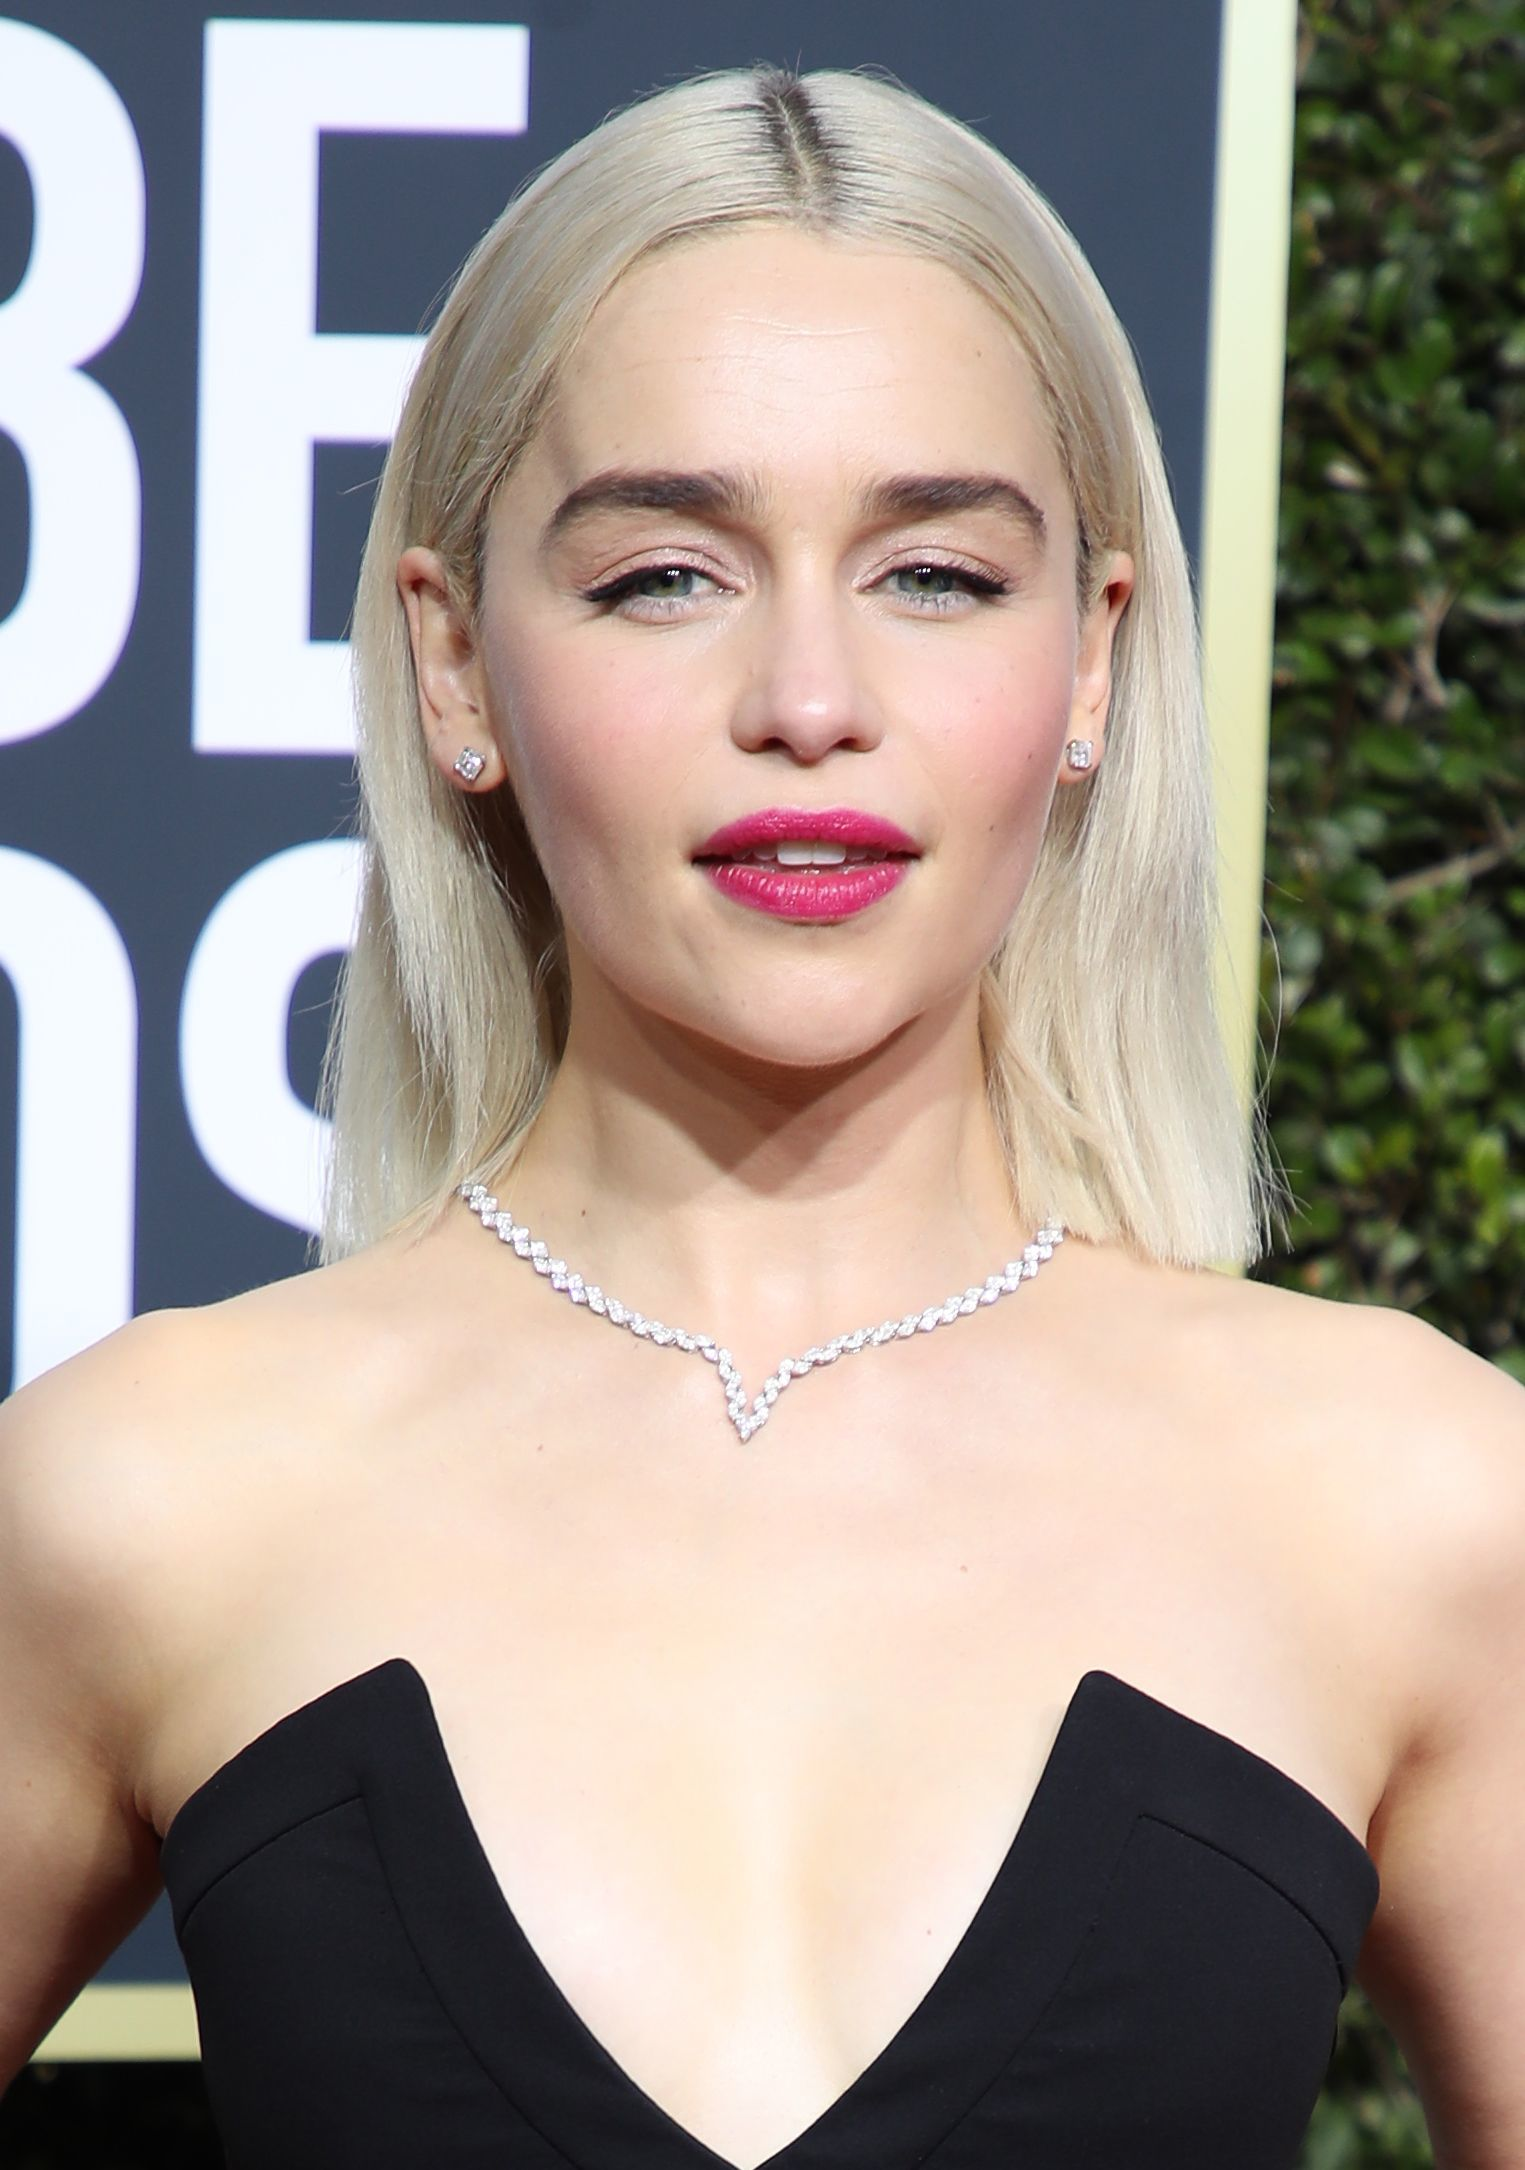 Emilia Clarke at the 75th Annual Golden Globe Awards in Los Angeles on Jan. 7, 2018.